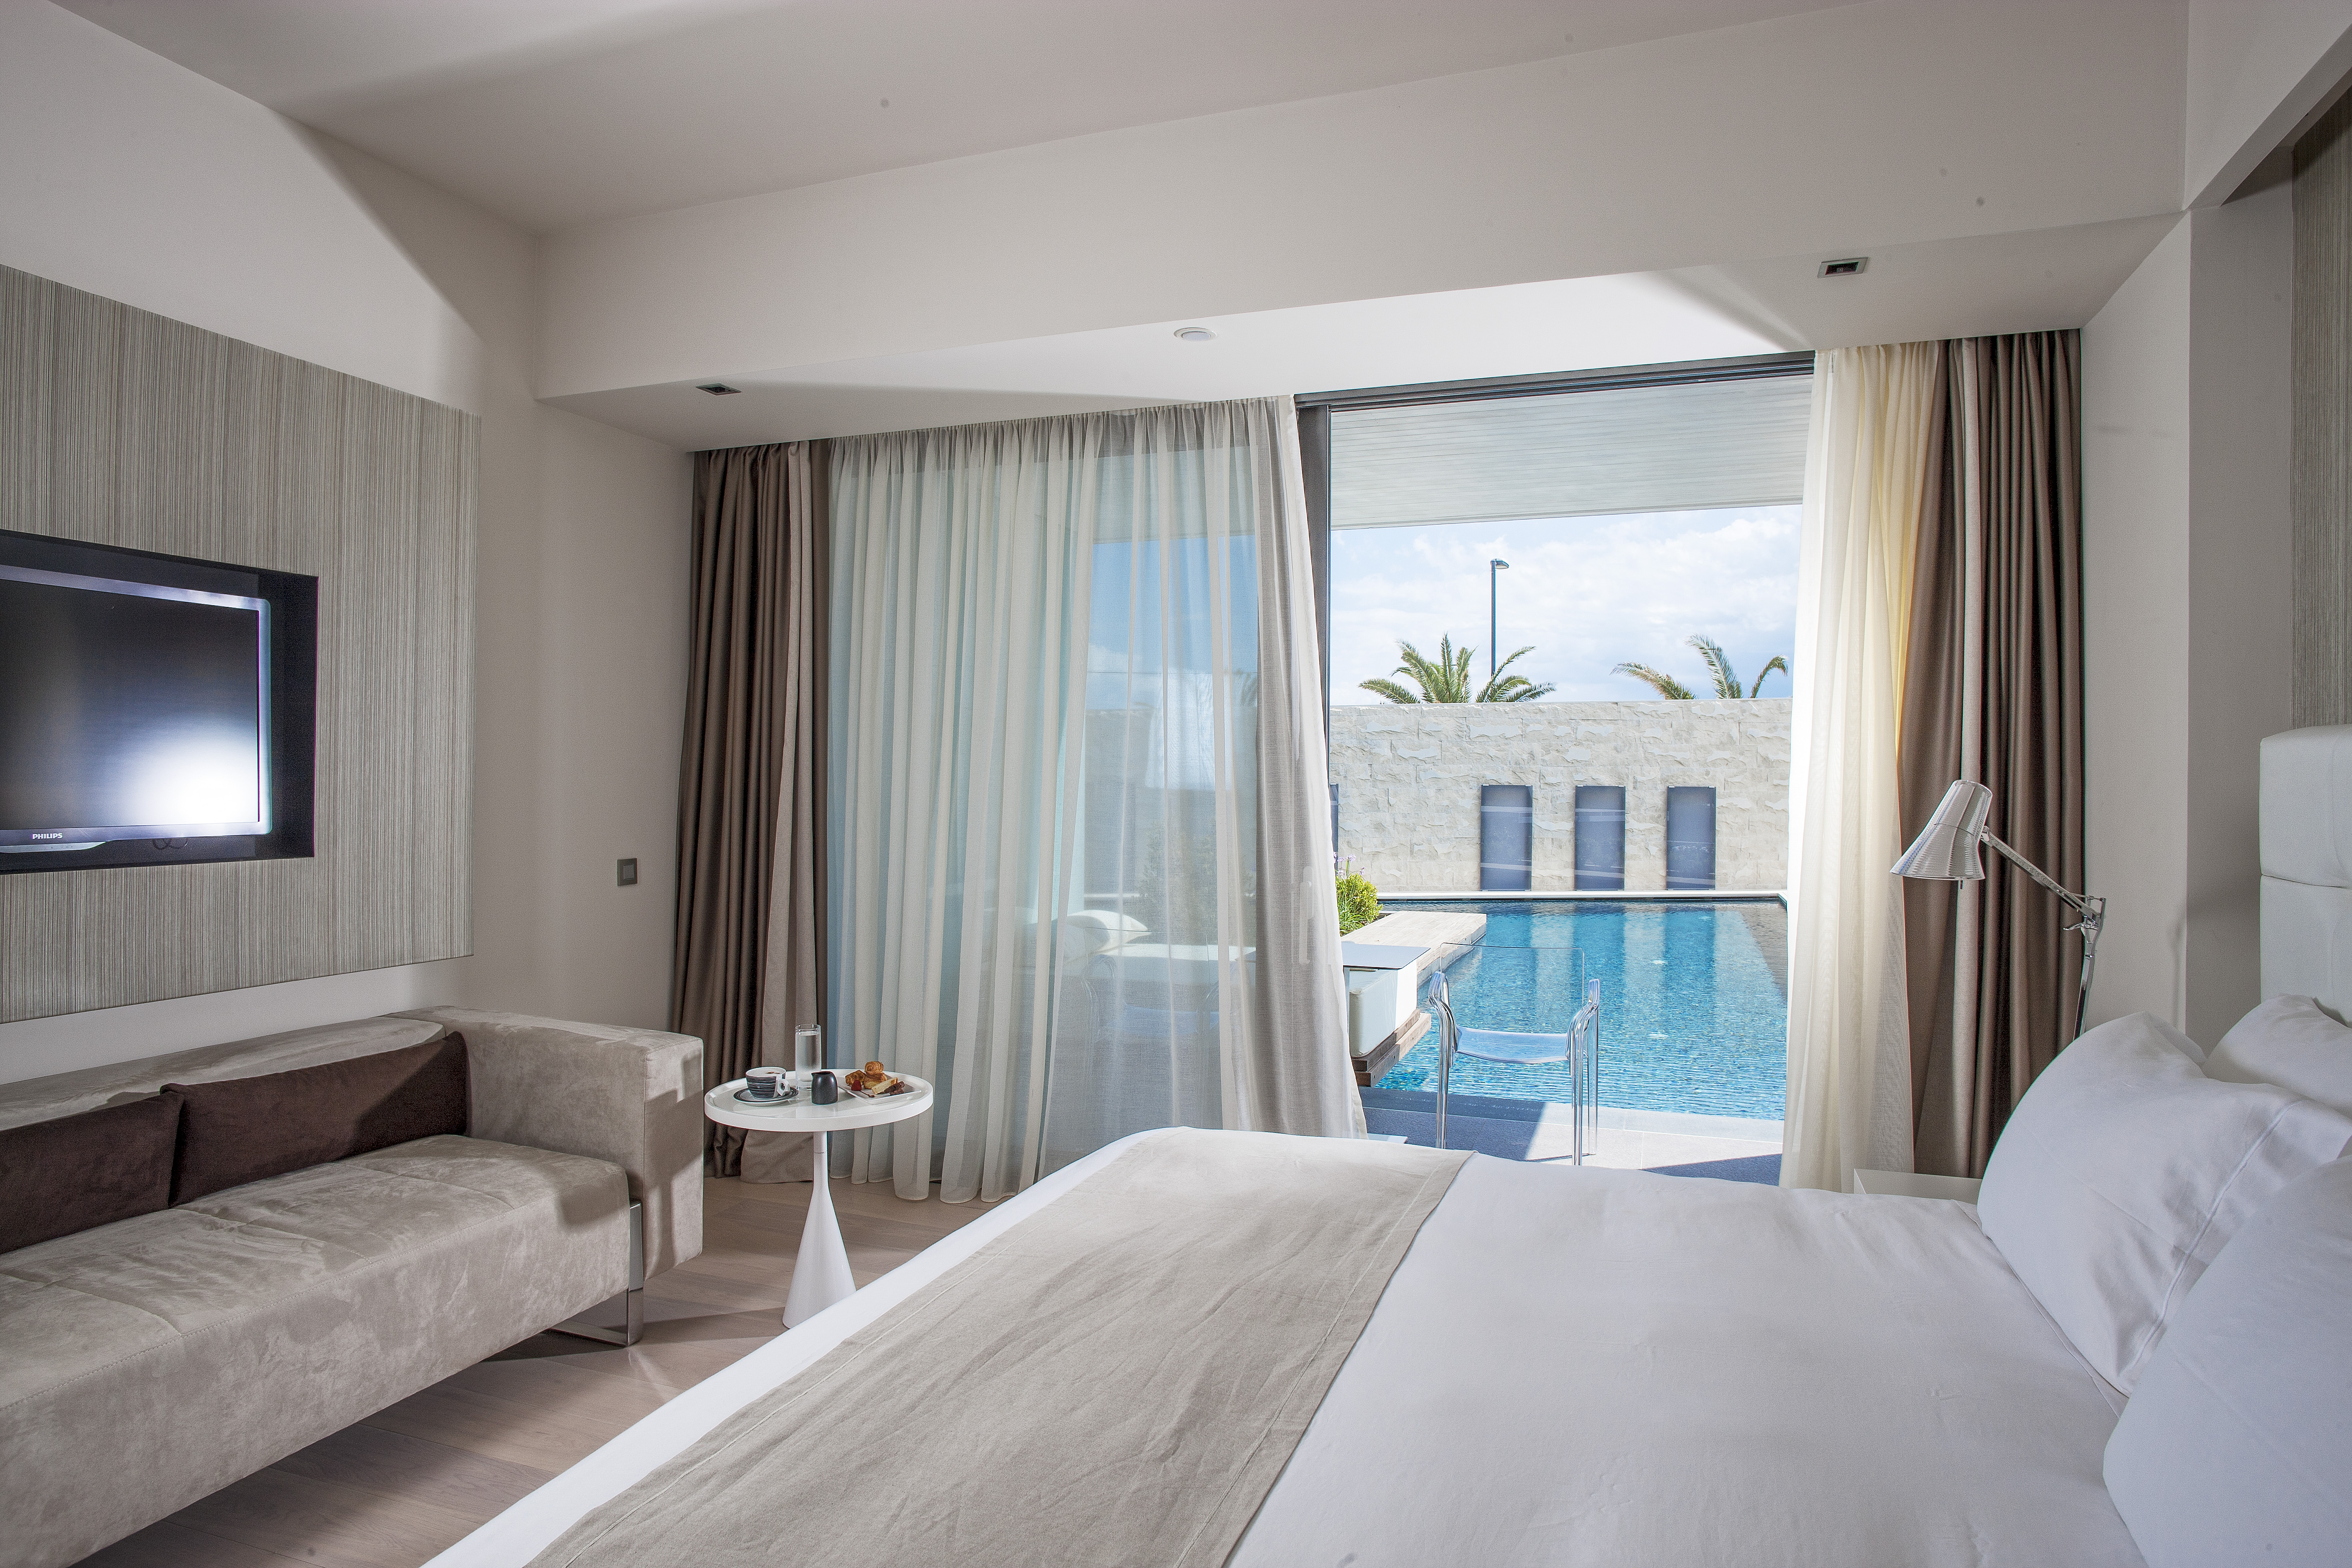 When choosing your hotel room usually theres not much difference between a regular double room and a suite but aqua blu hotel spa which is a member of